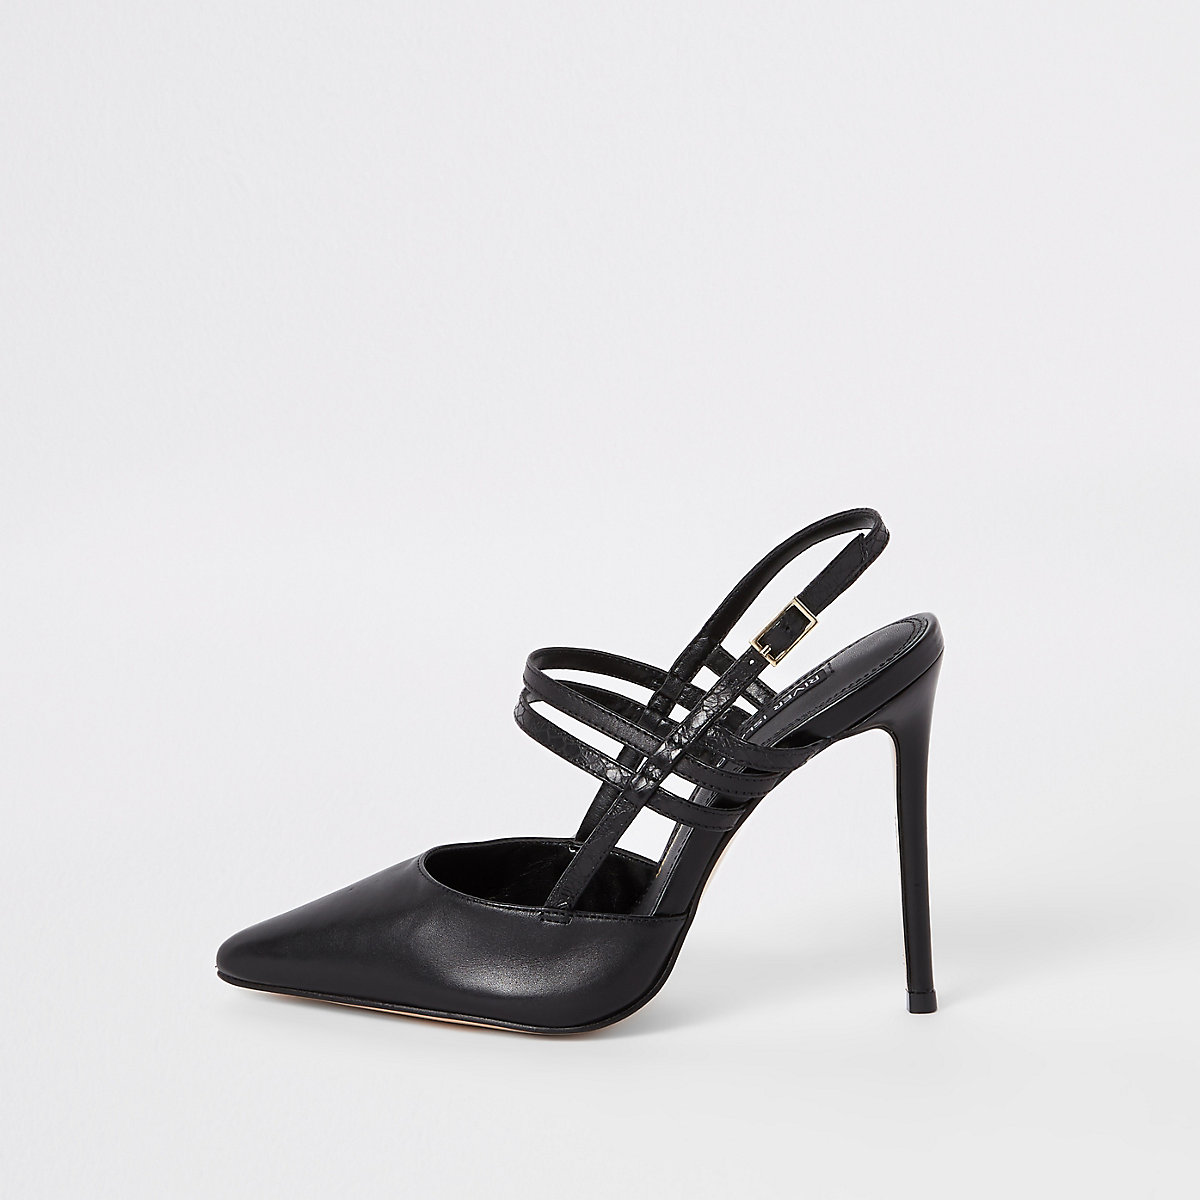 Black leather strappy court shoes